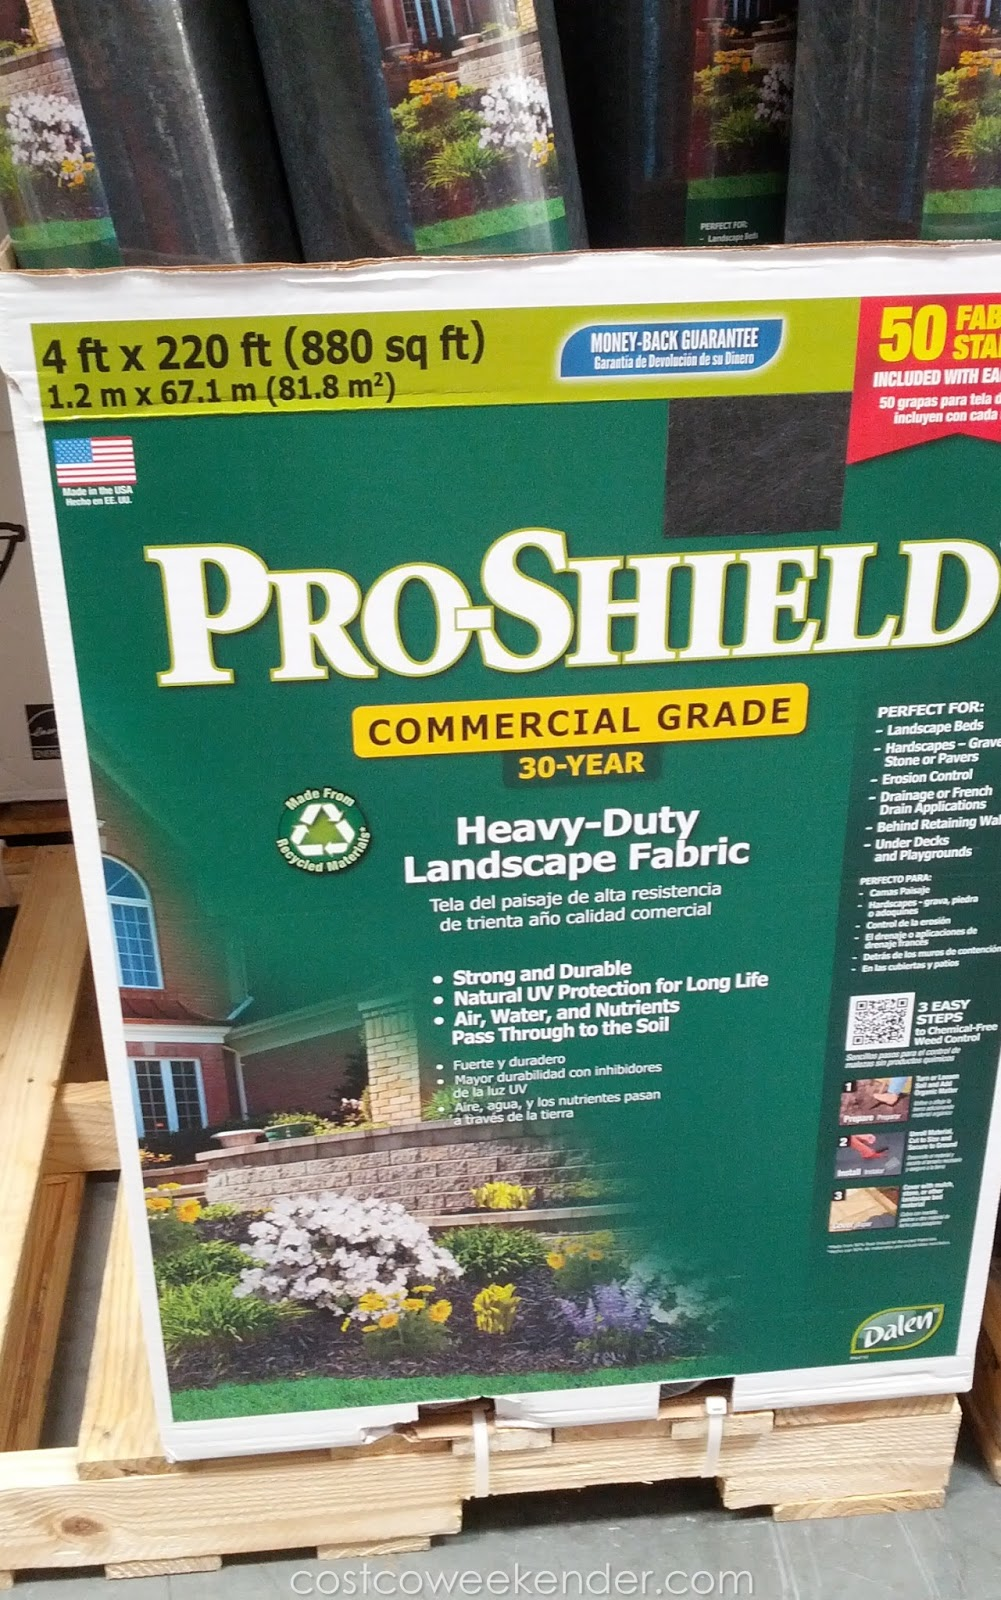 Keep your backyard and grass looking its best with the help of Dalen Pro  Shield Landscape - Dalen Pro-Shield Heavy Duty Landscape Fabric Costco Weekender